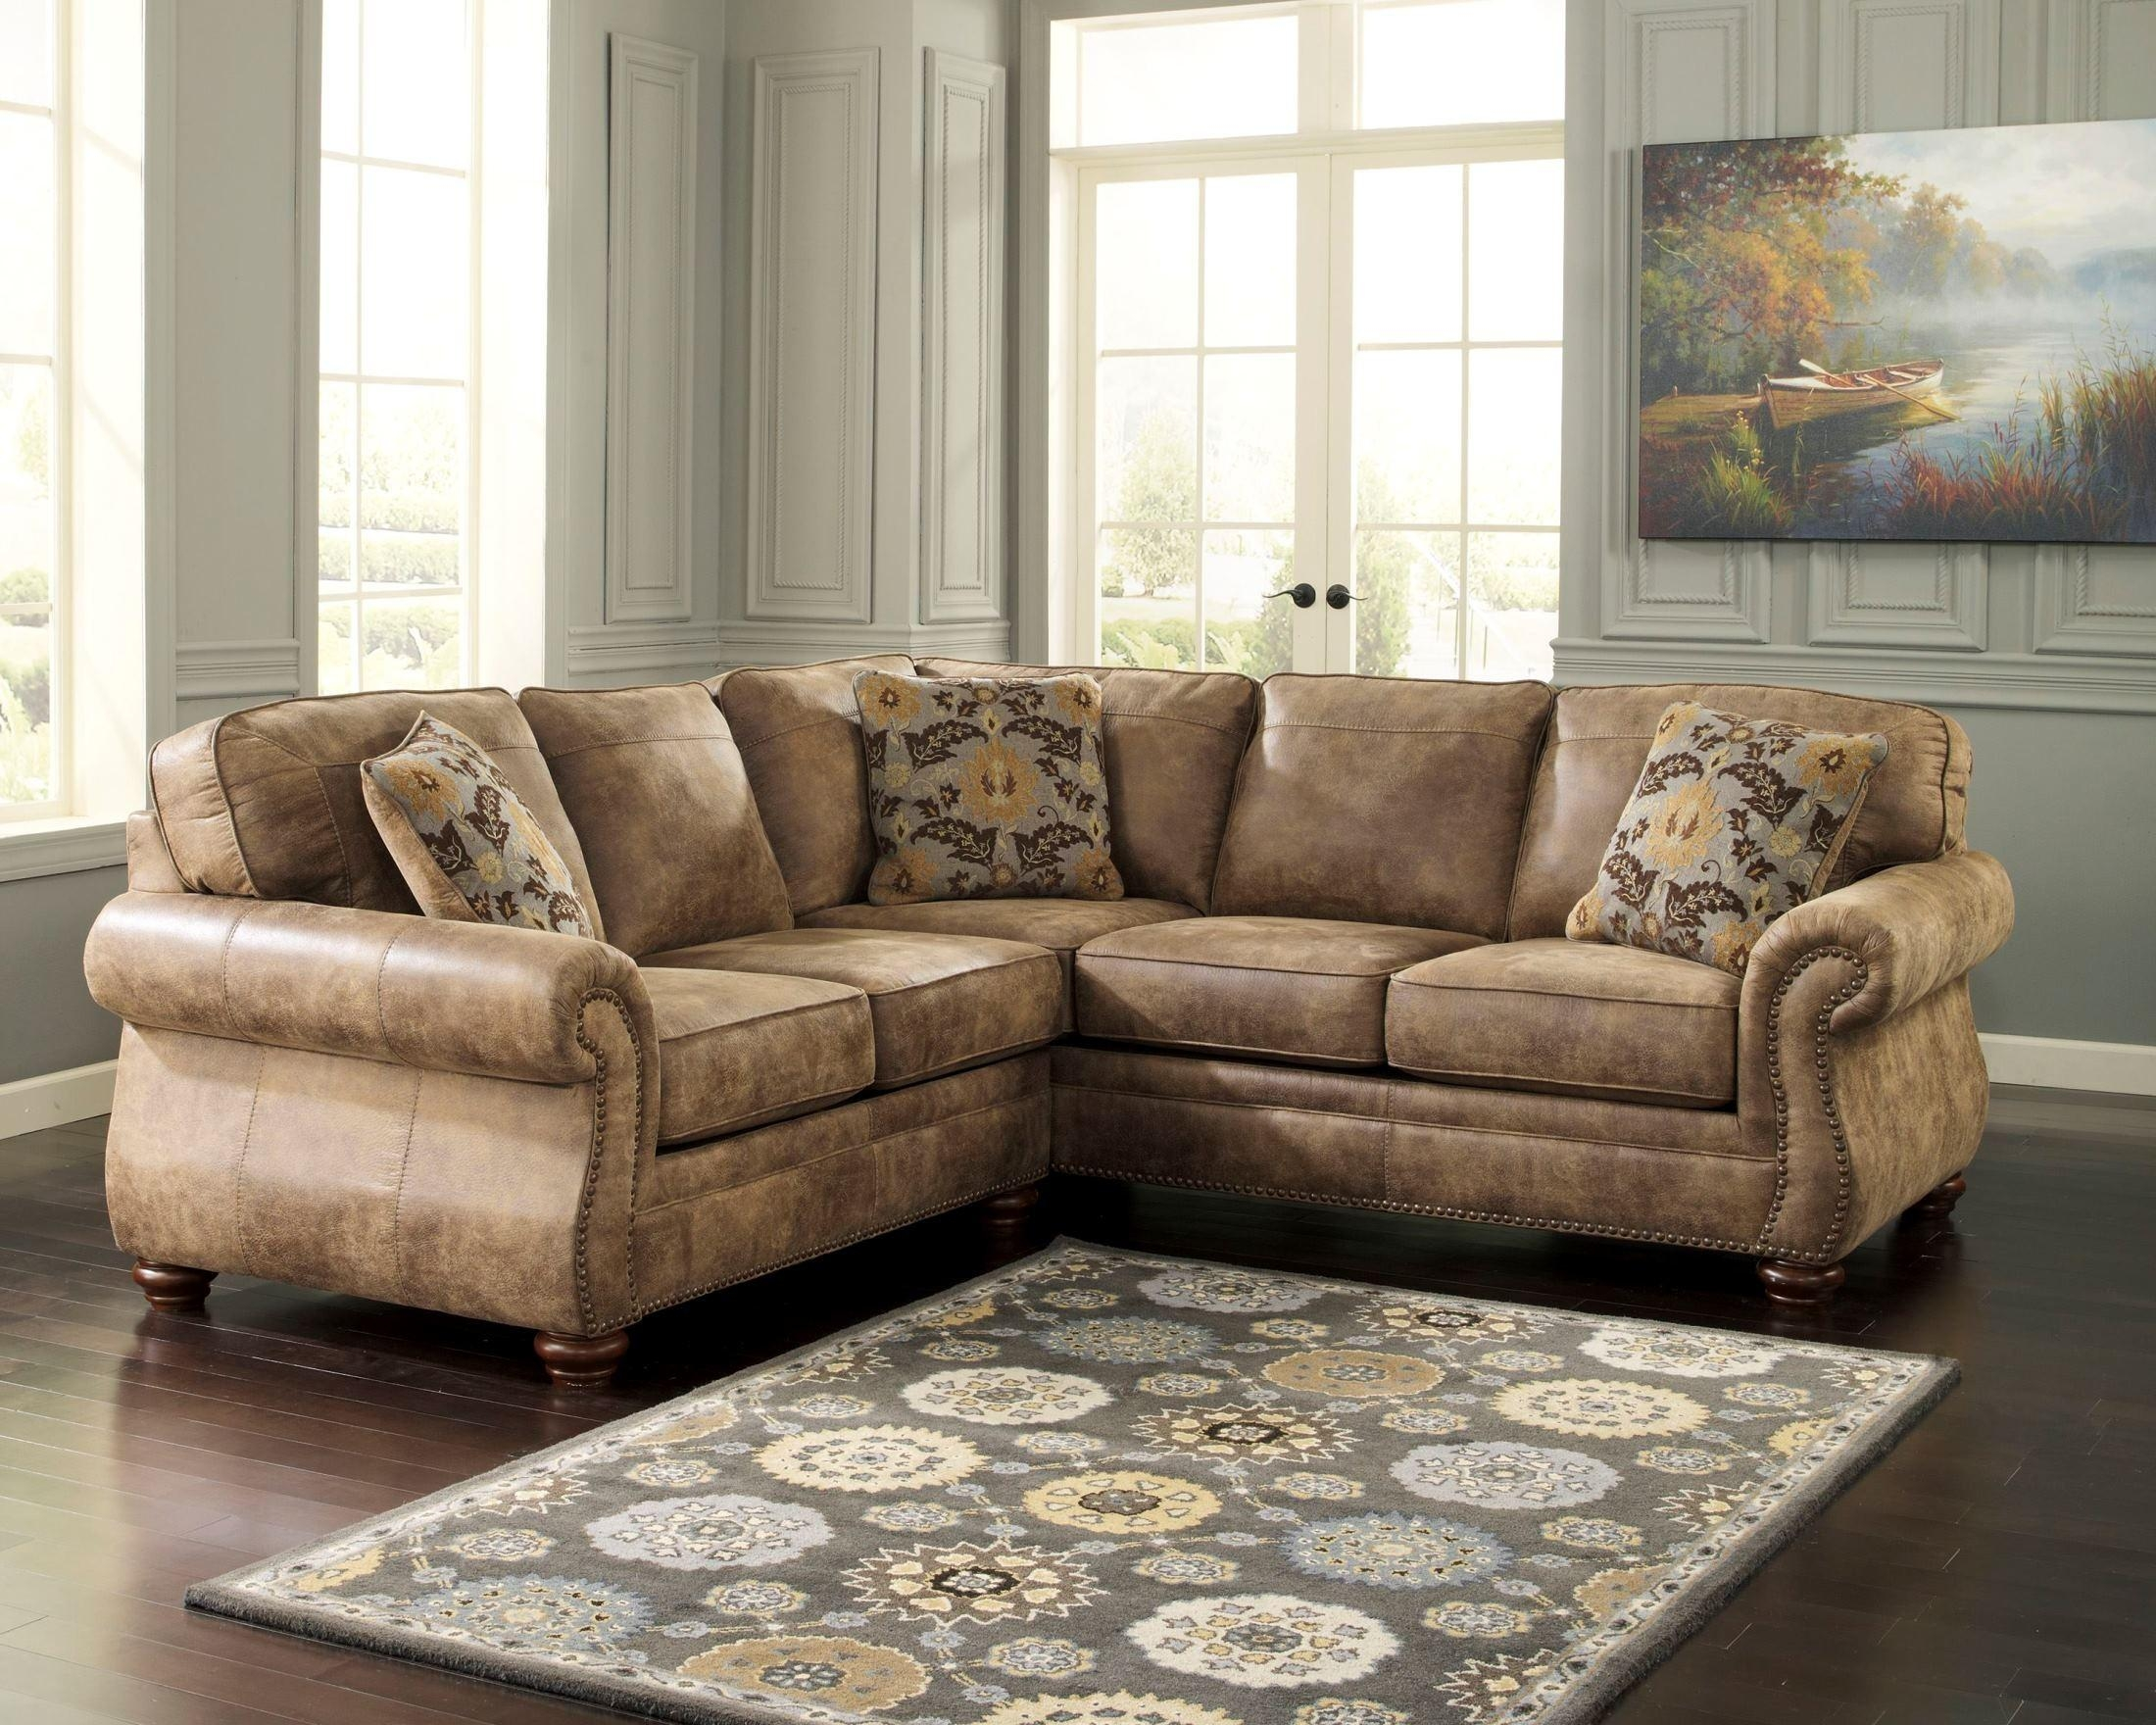 Chenille Sectional. With Chenille Sectional (Image 9 of 20)